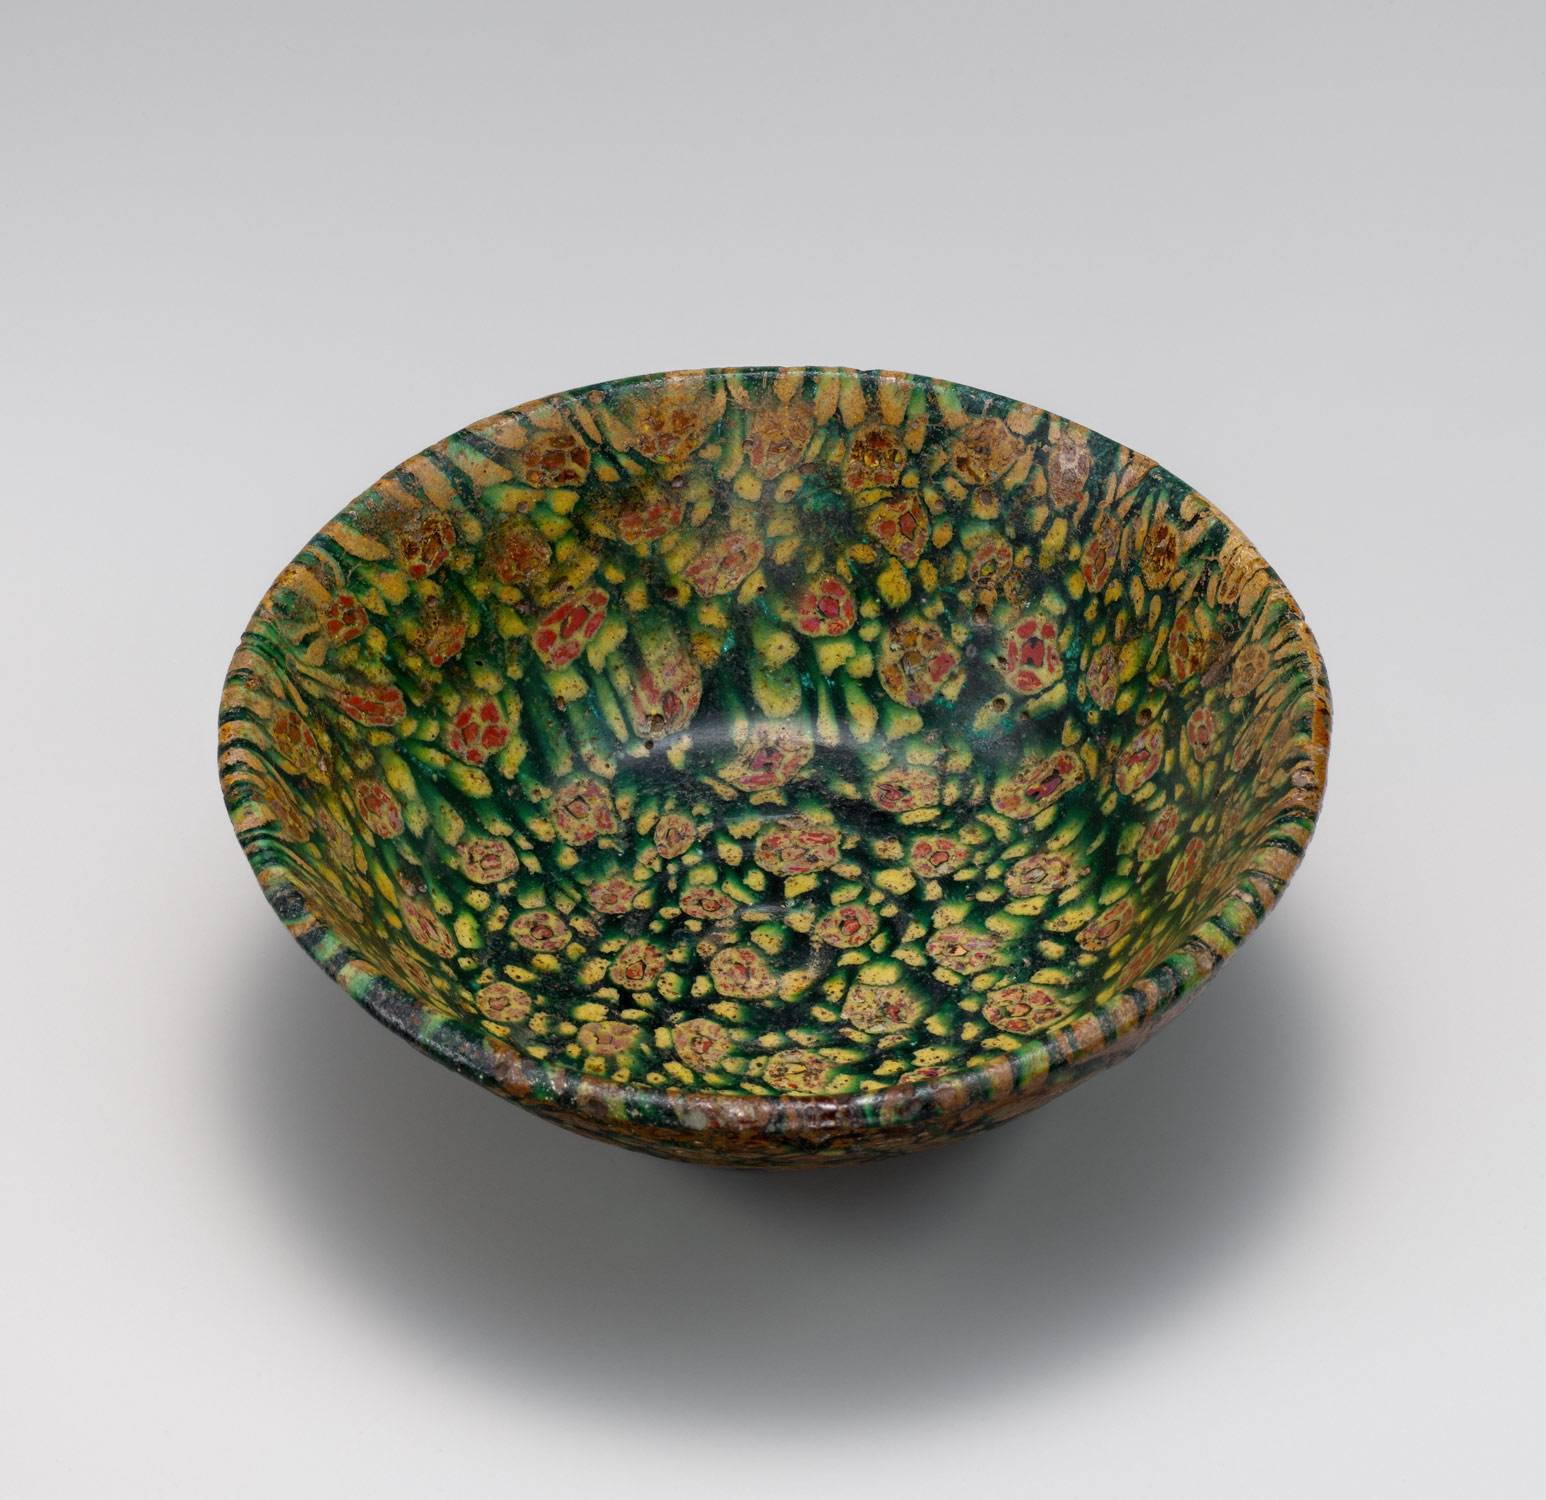 Glass Bowl in Millefiori Technique, ,Glass